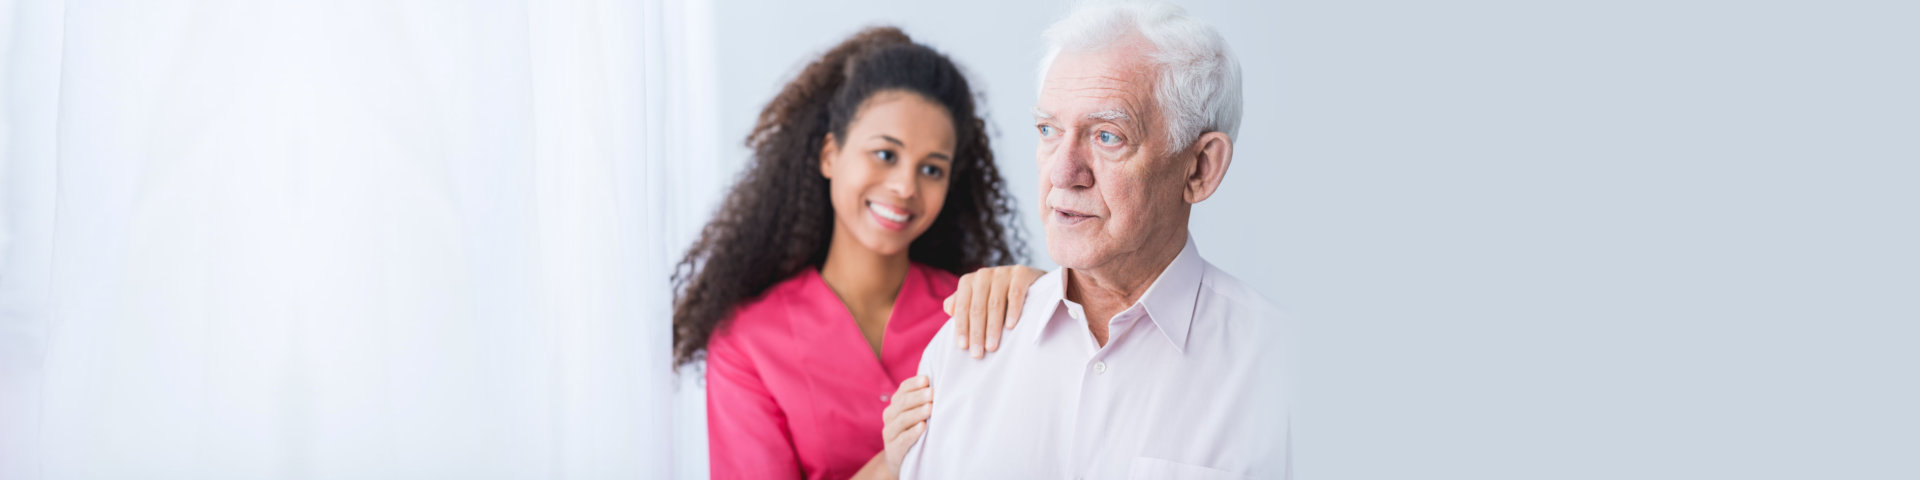 Female carer assisting and supporting senior man